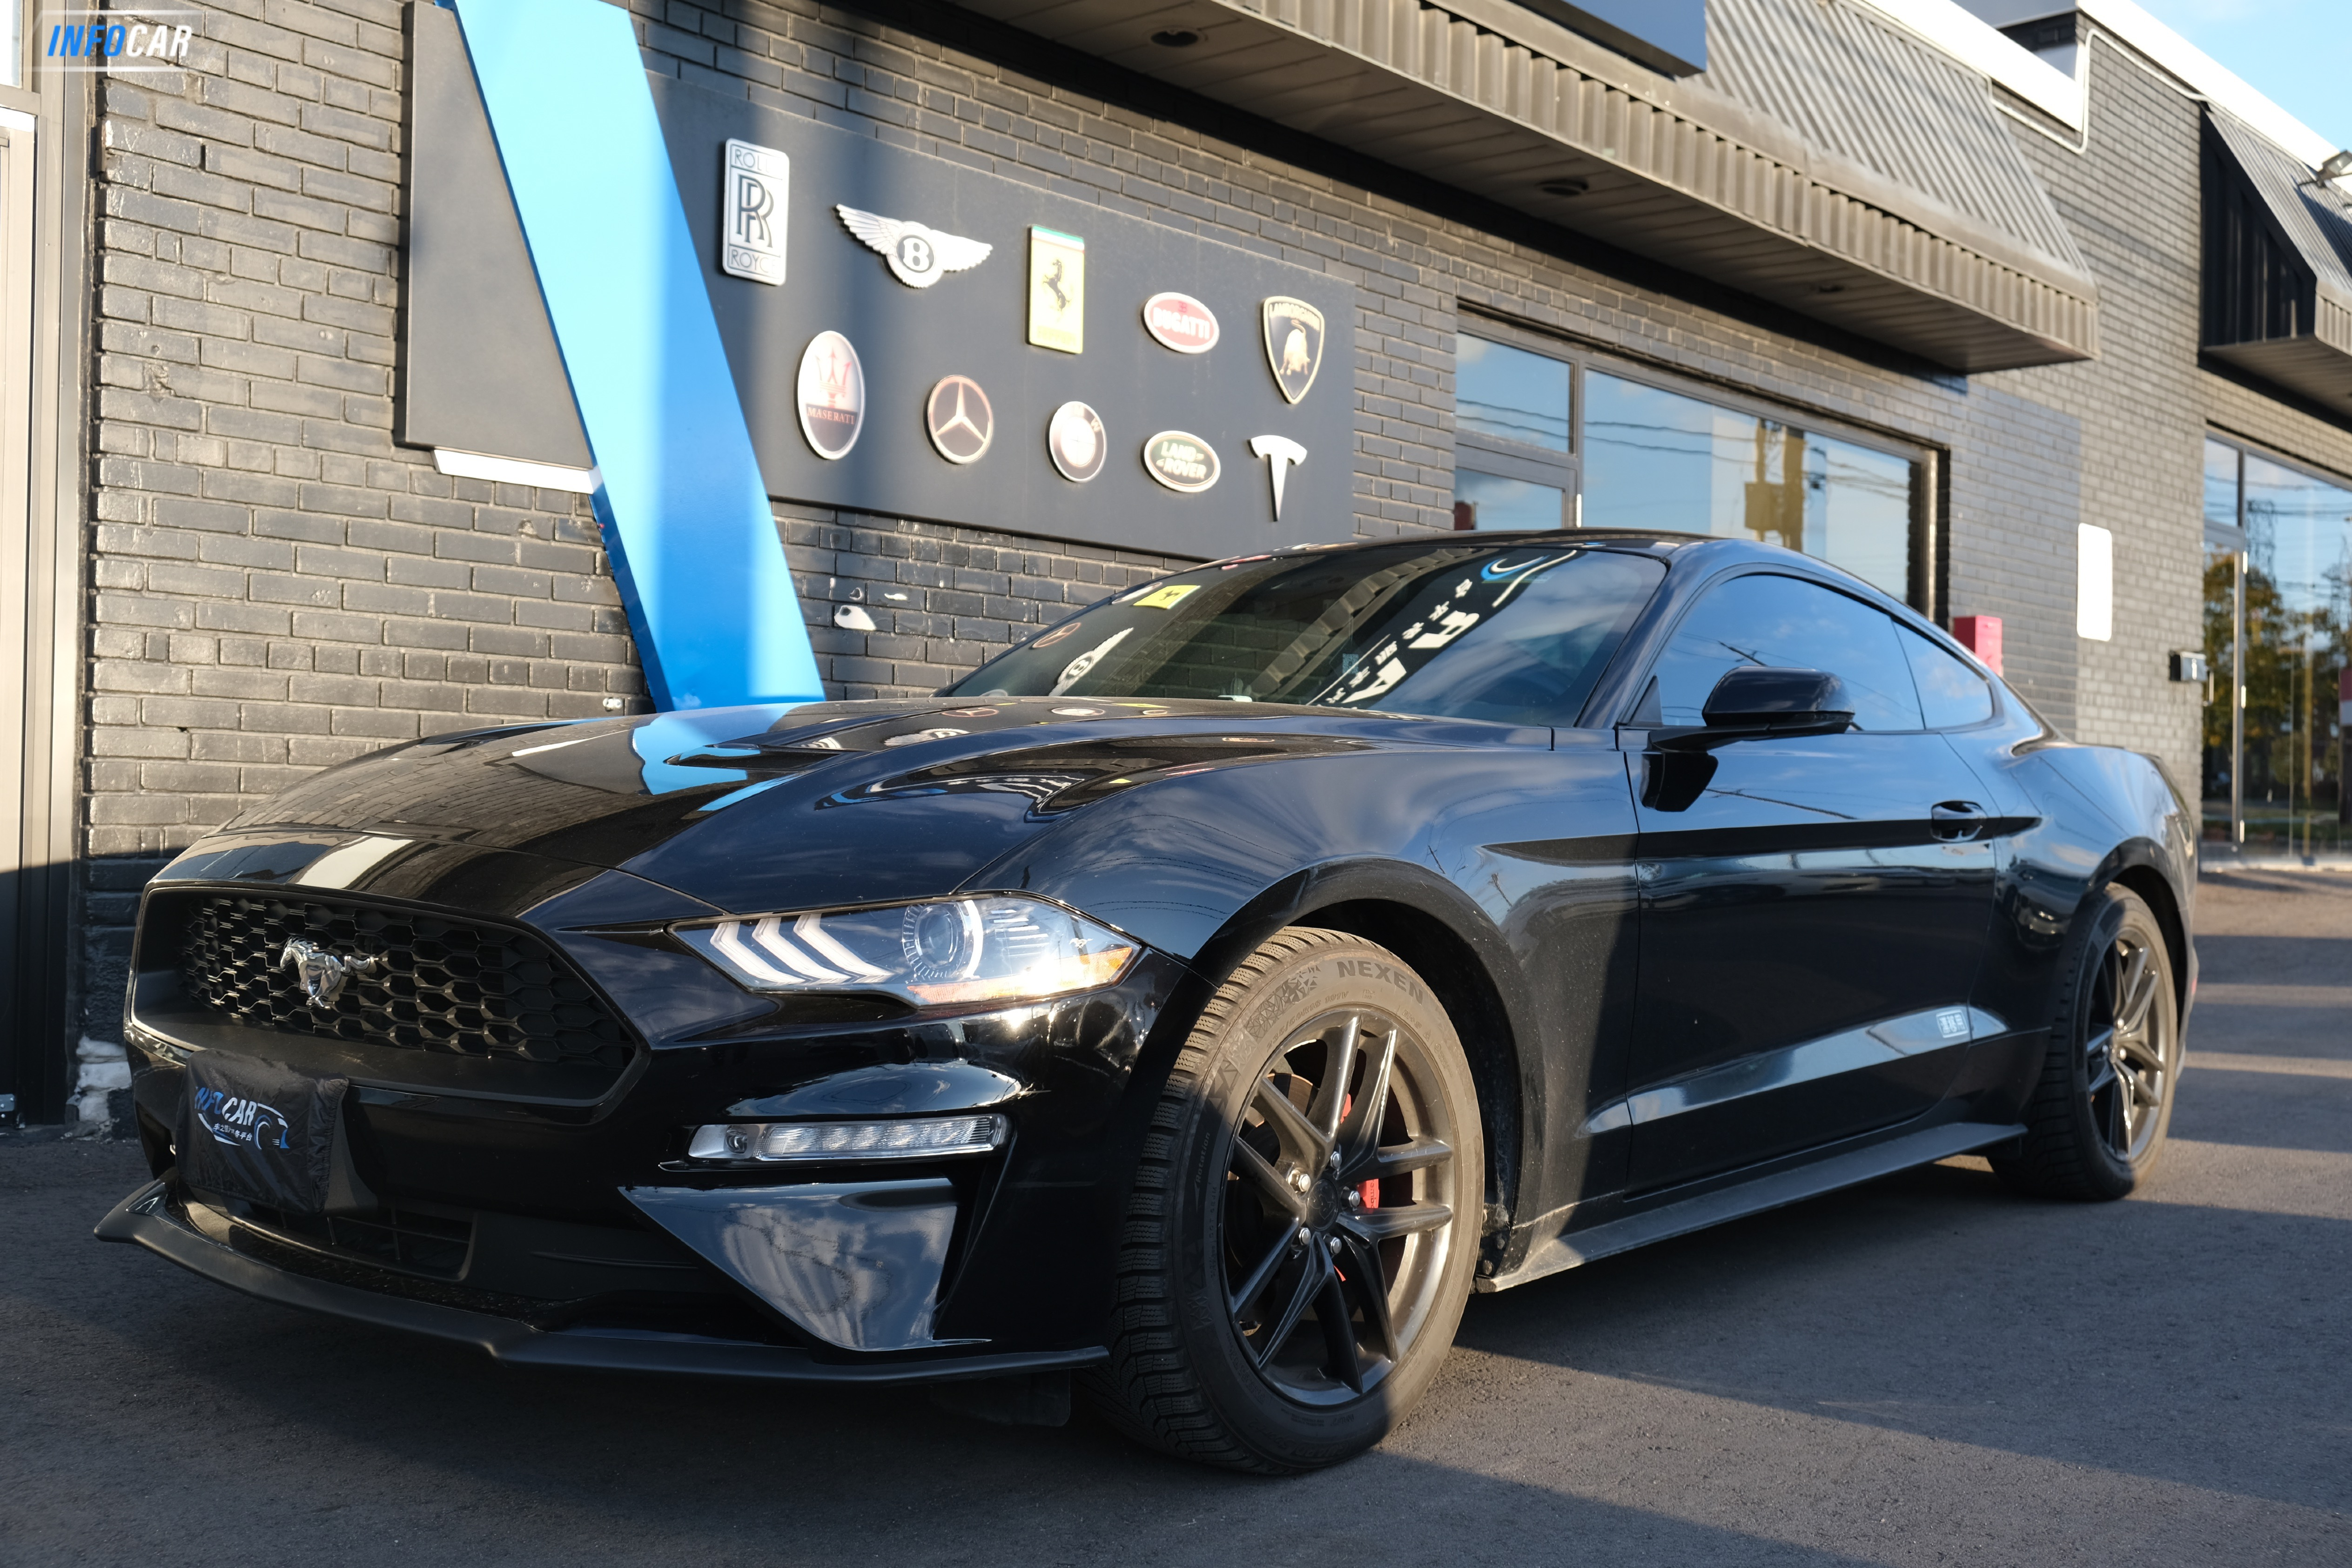 2019 Ford Mustang Ecoboost Premium - INFOCAR - Toronto's Most Comprehensive New and Used Auto Trading Platform